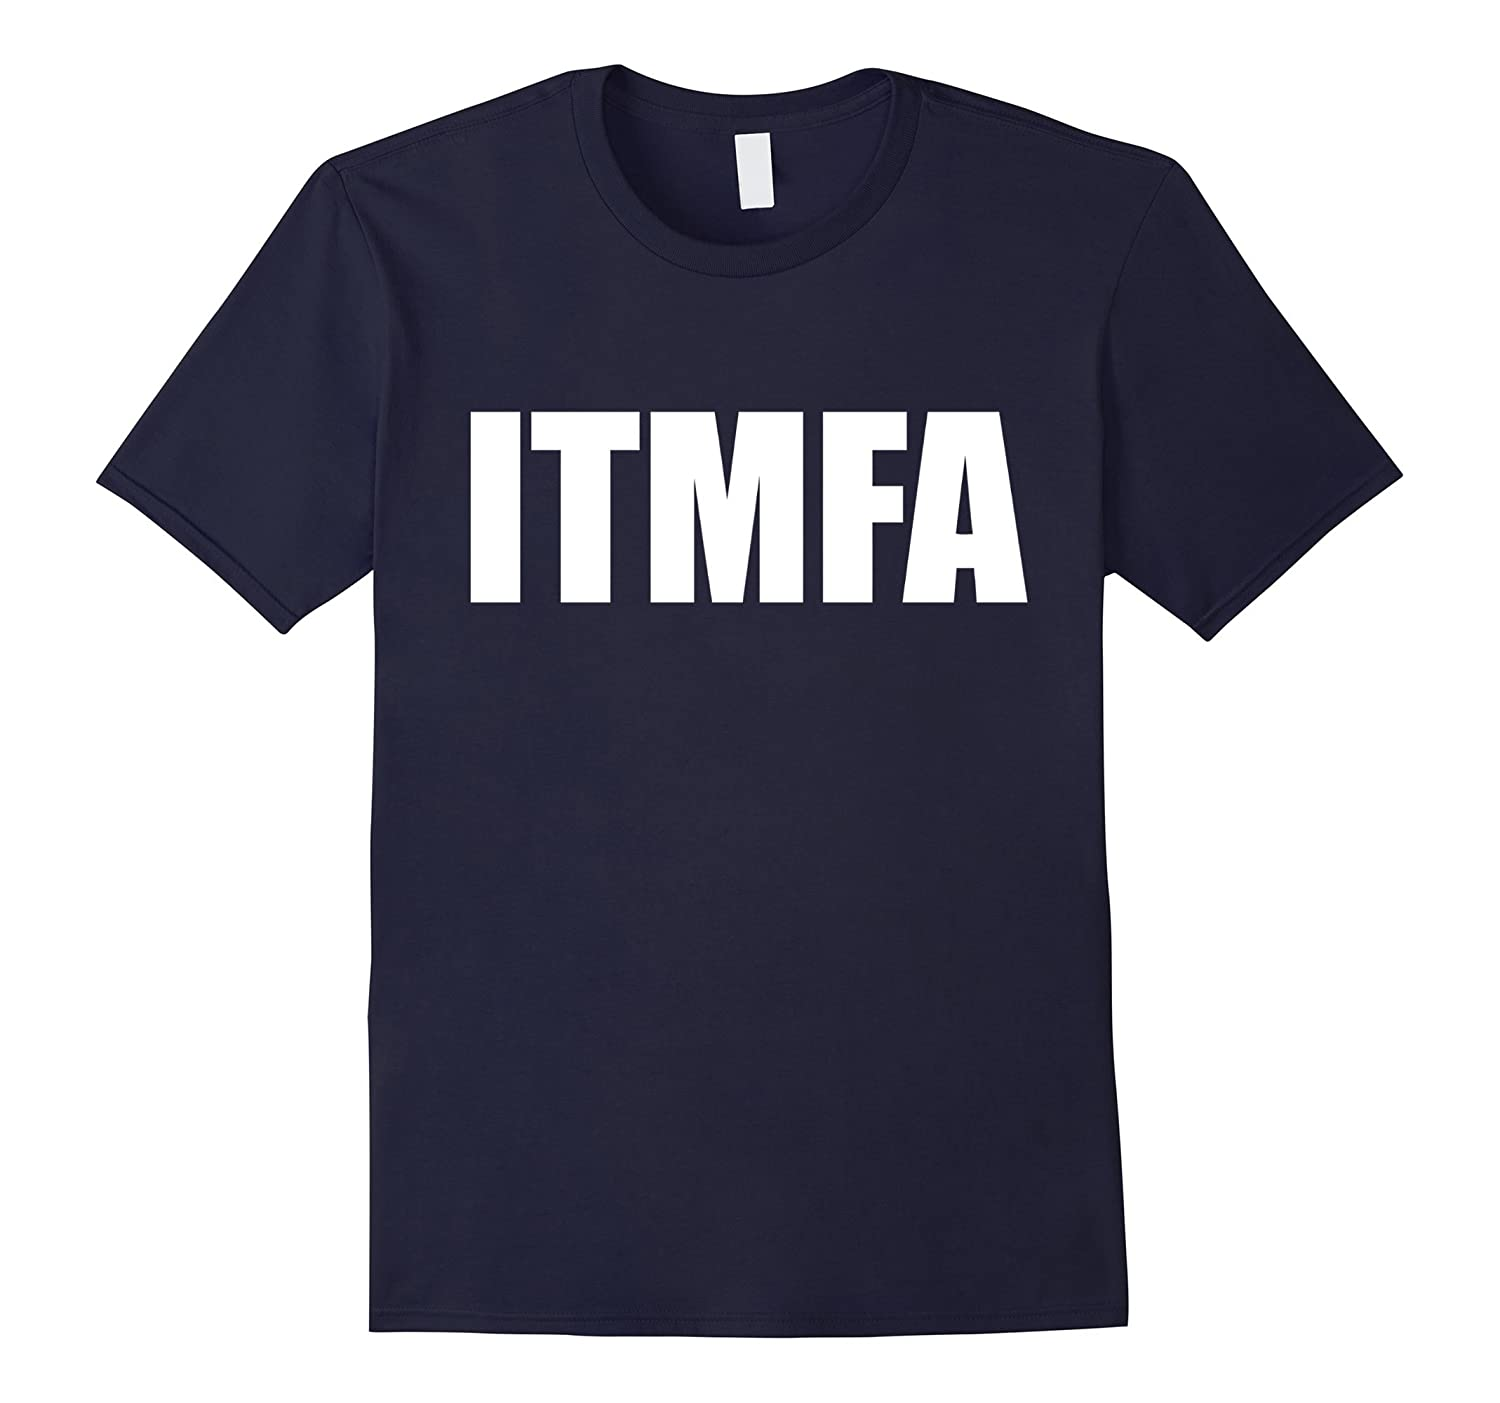 Itmfa t-shirt for men and women-BN